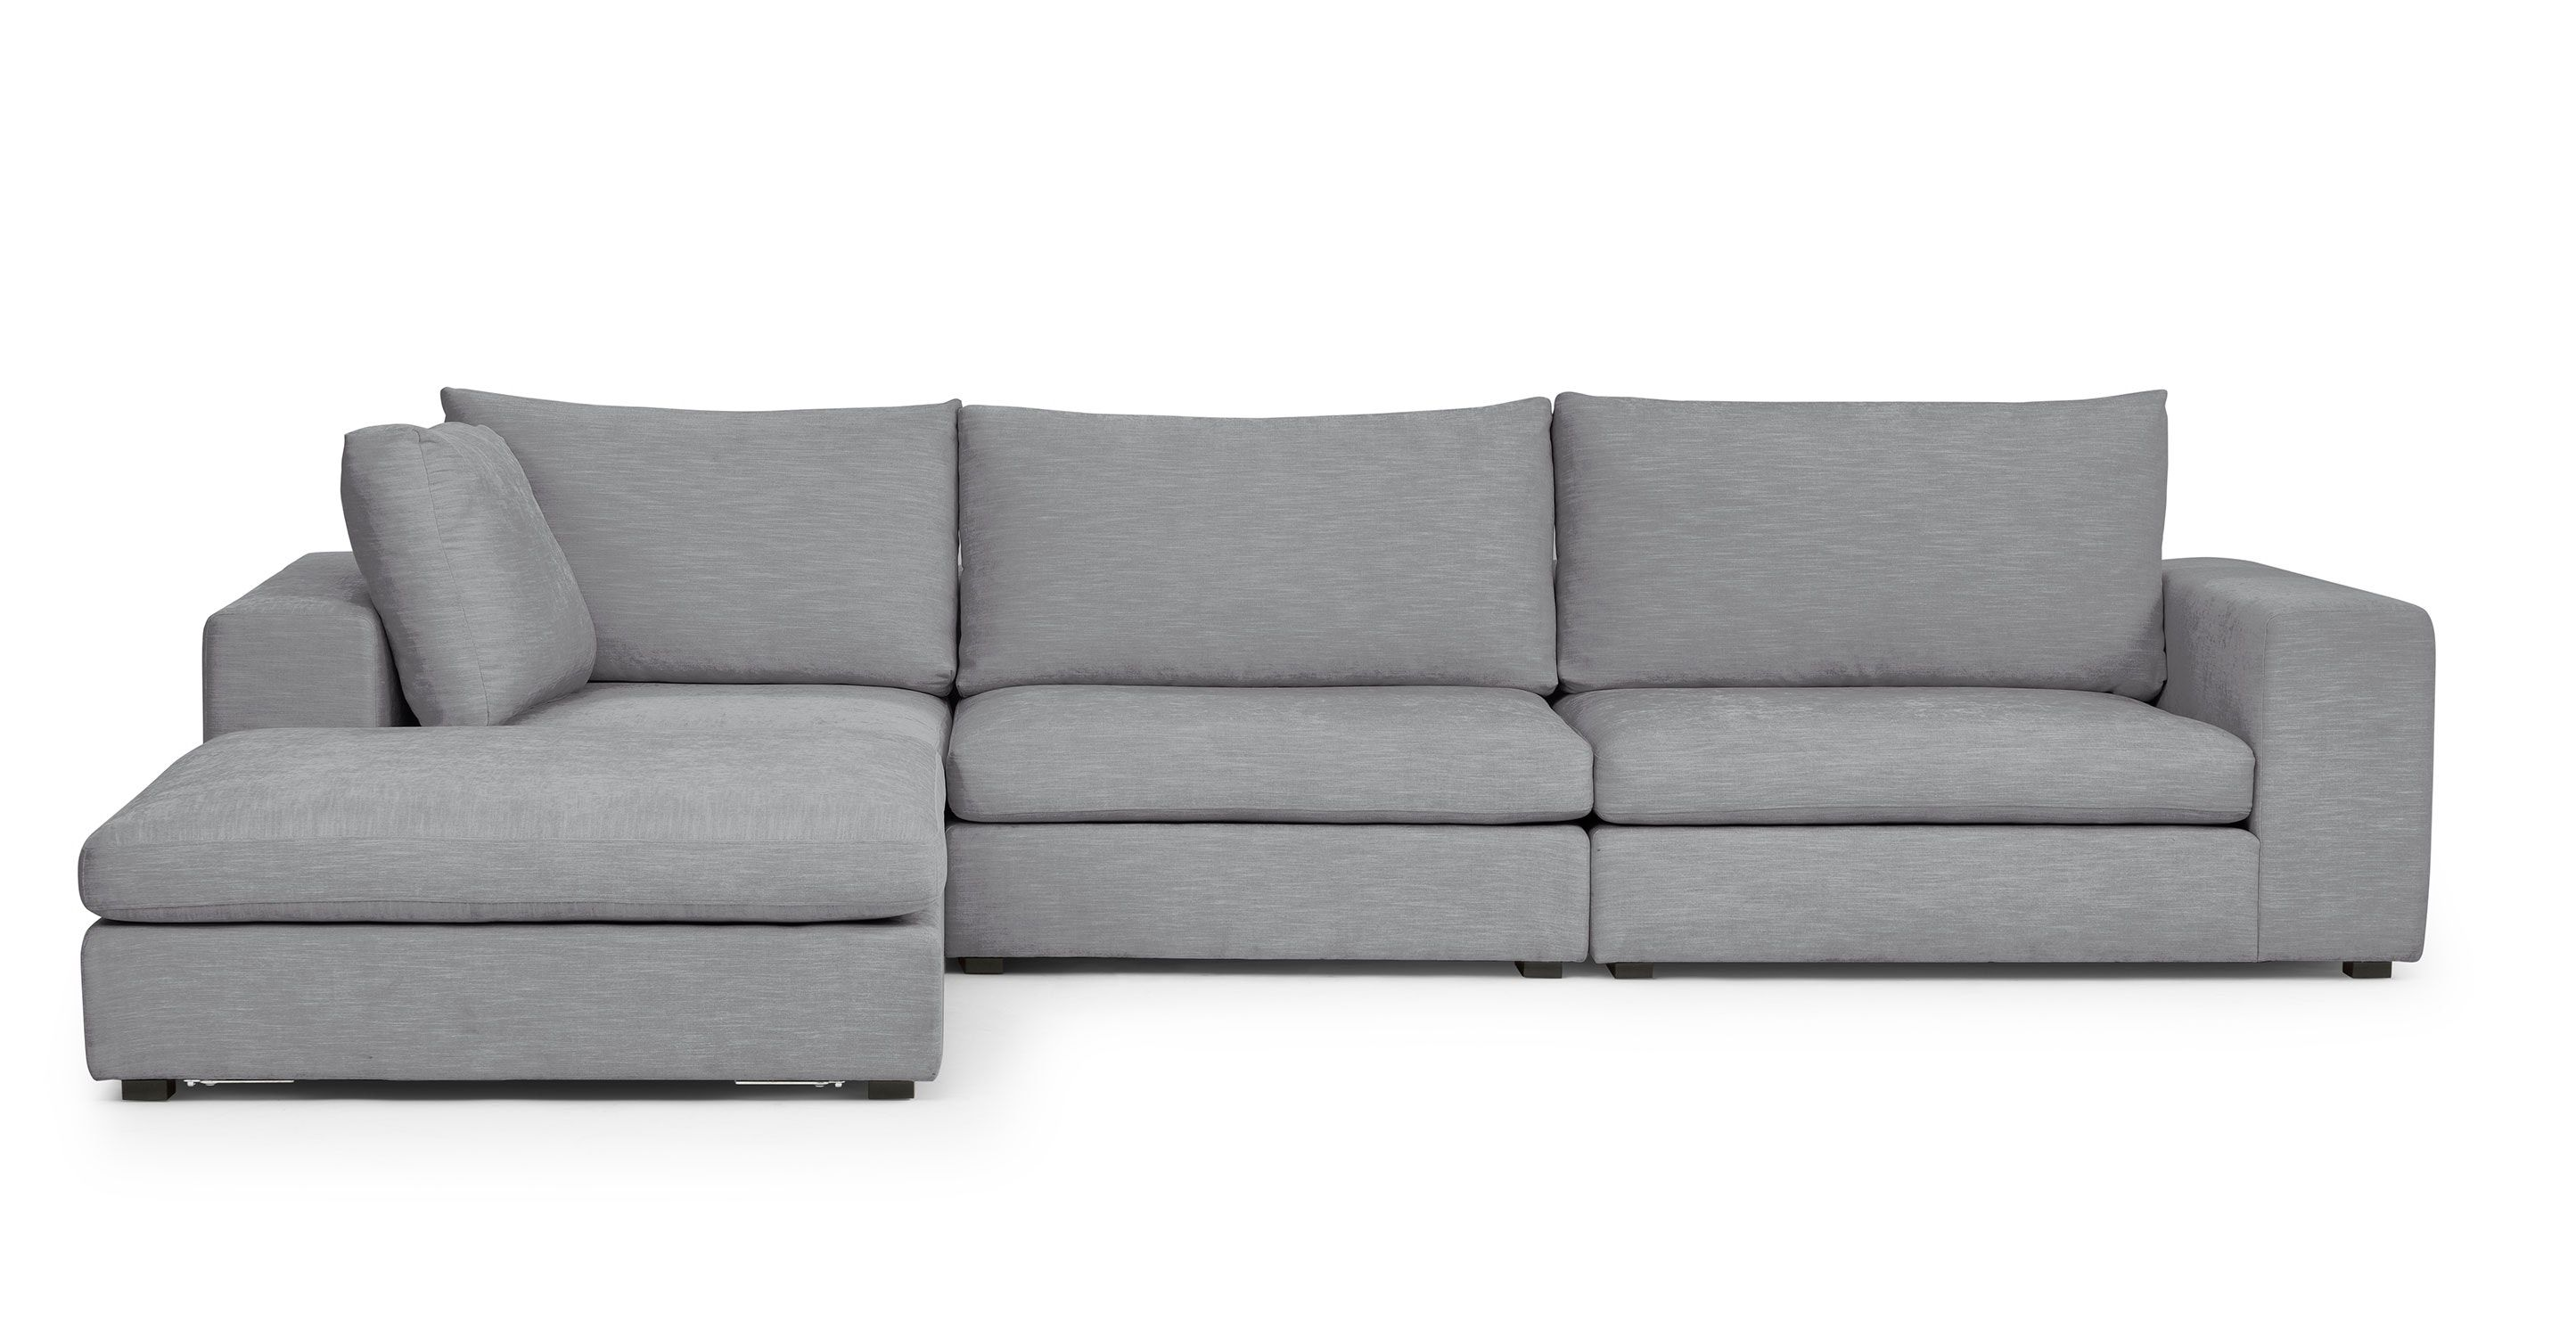 Lounge In The Lap Of This Sumptuous Modular Sofa A Low Profile With Deep Seats The Modular Sectional Sofa Mid Century Modern Sectional Sofa Modular Sectional